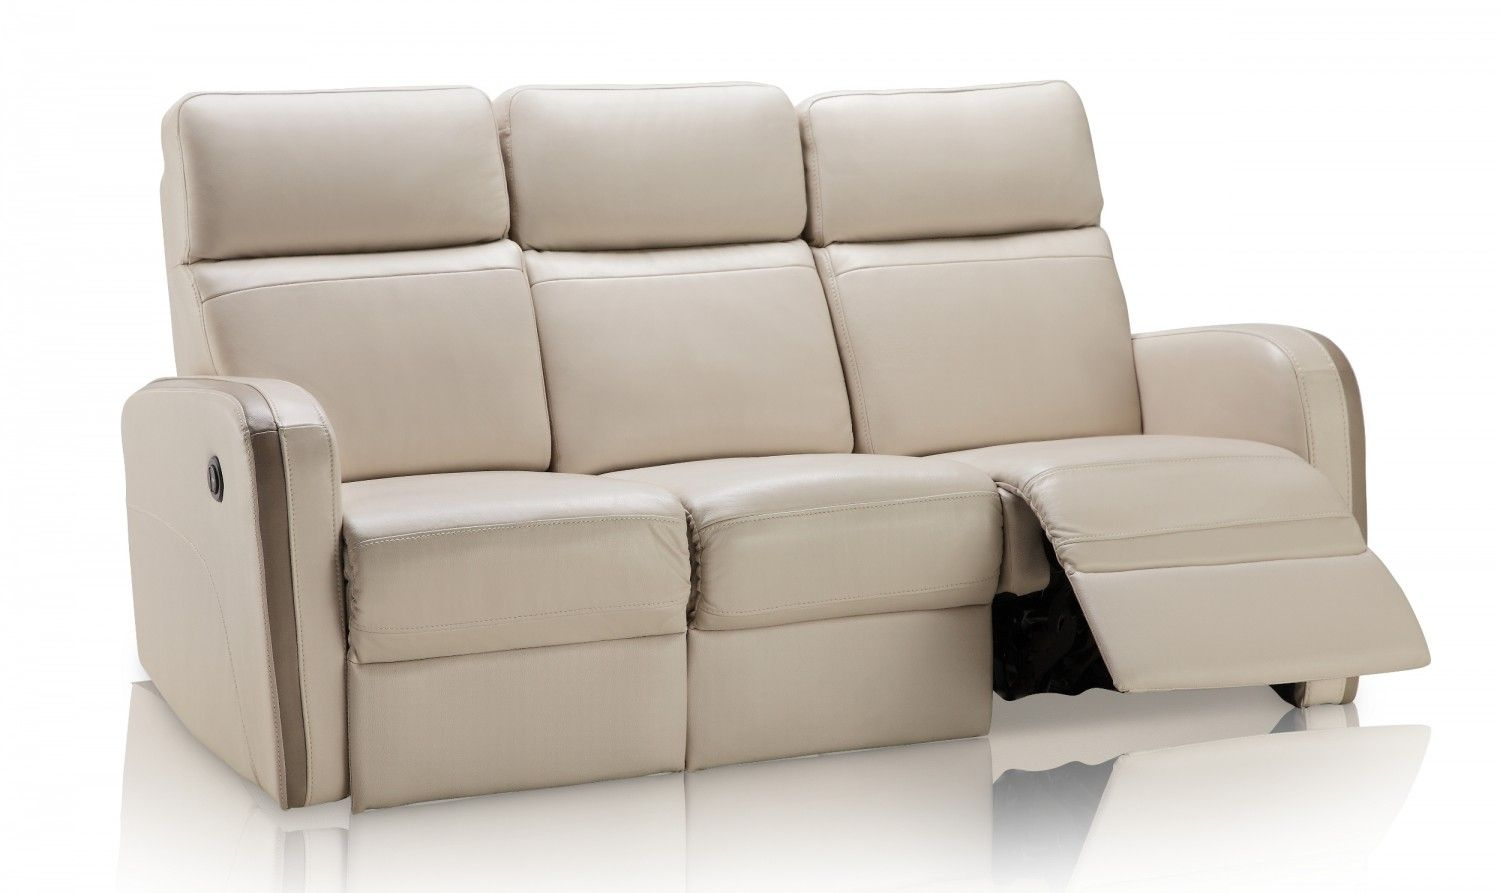 Argentina Leather Sofa With Electrical Recliners Creative